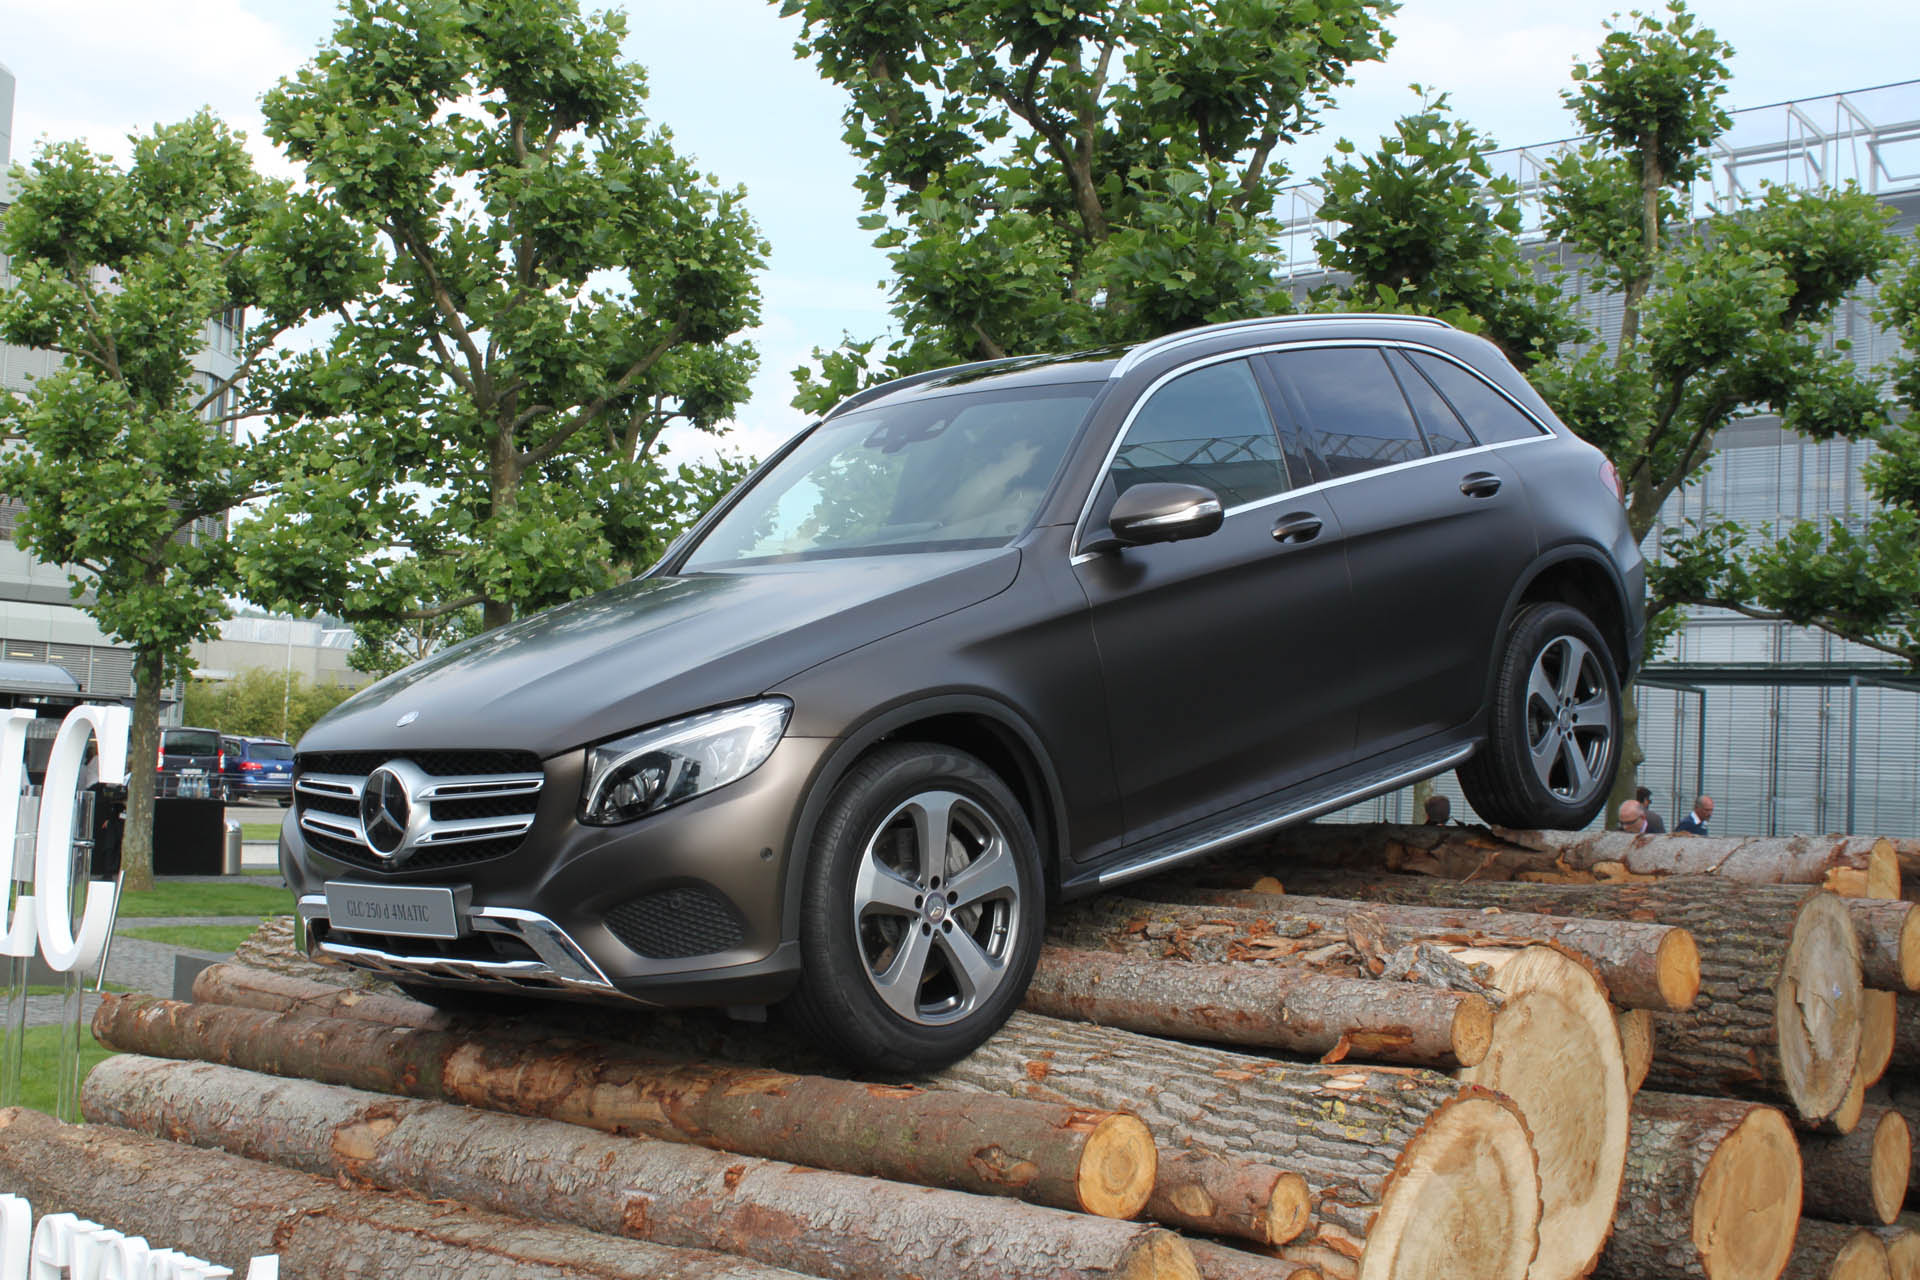 2016 Mercedes-Benz GLC 300 Sheds Boxy Style, Gains New ...